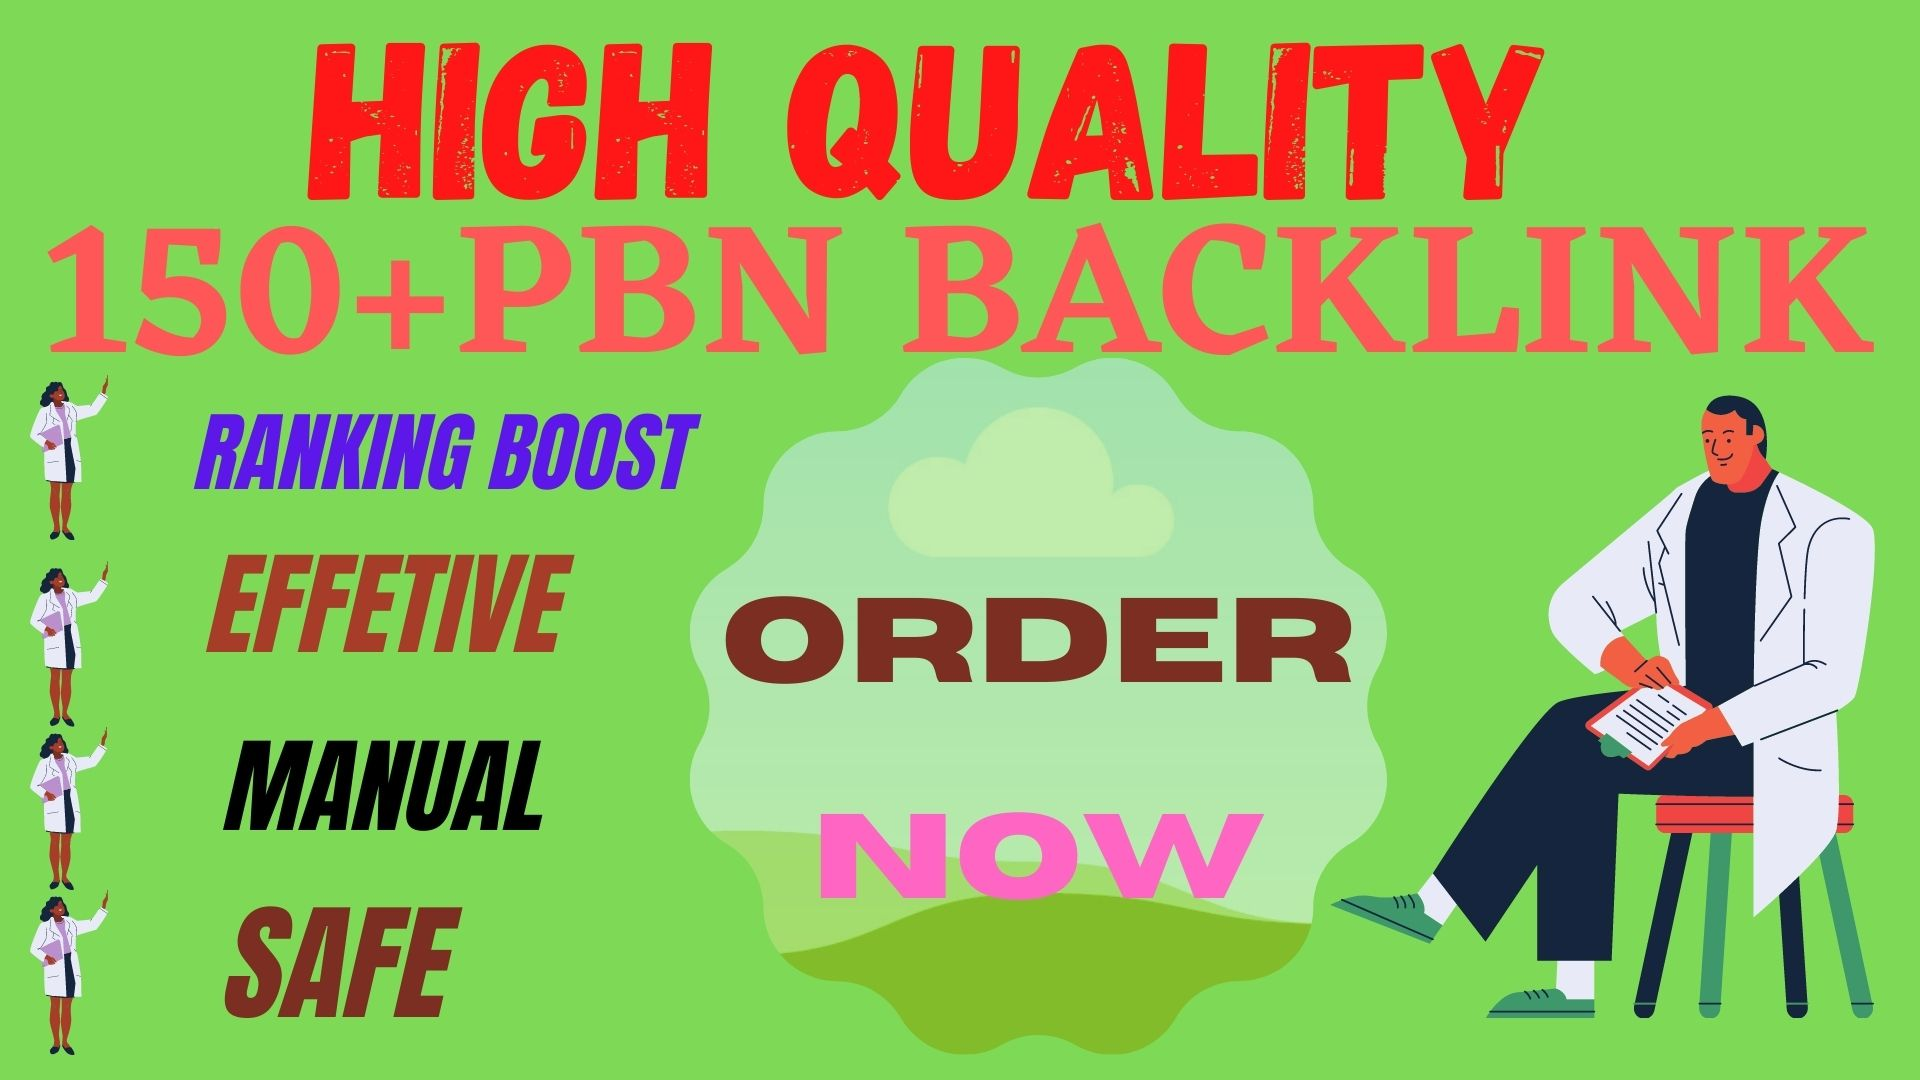 Get powerfull 150 + pbn backlink with high DA/PA/TF/CF on your homepage with unique website Perfect